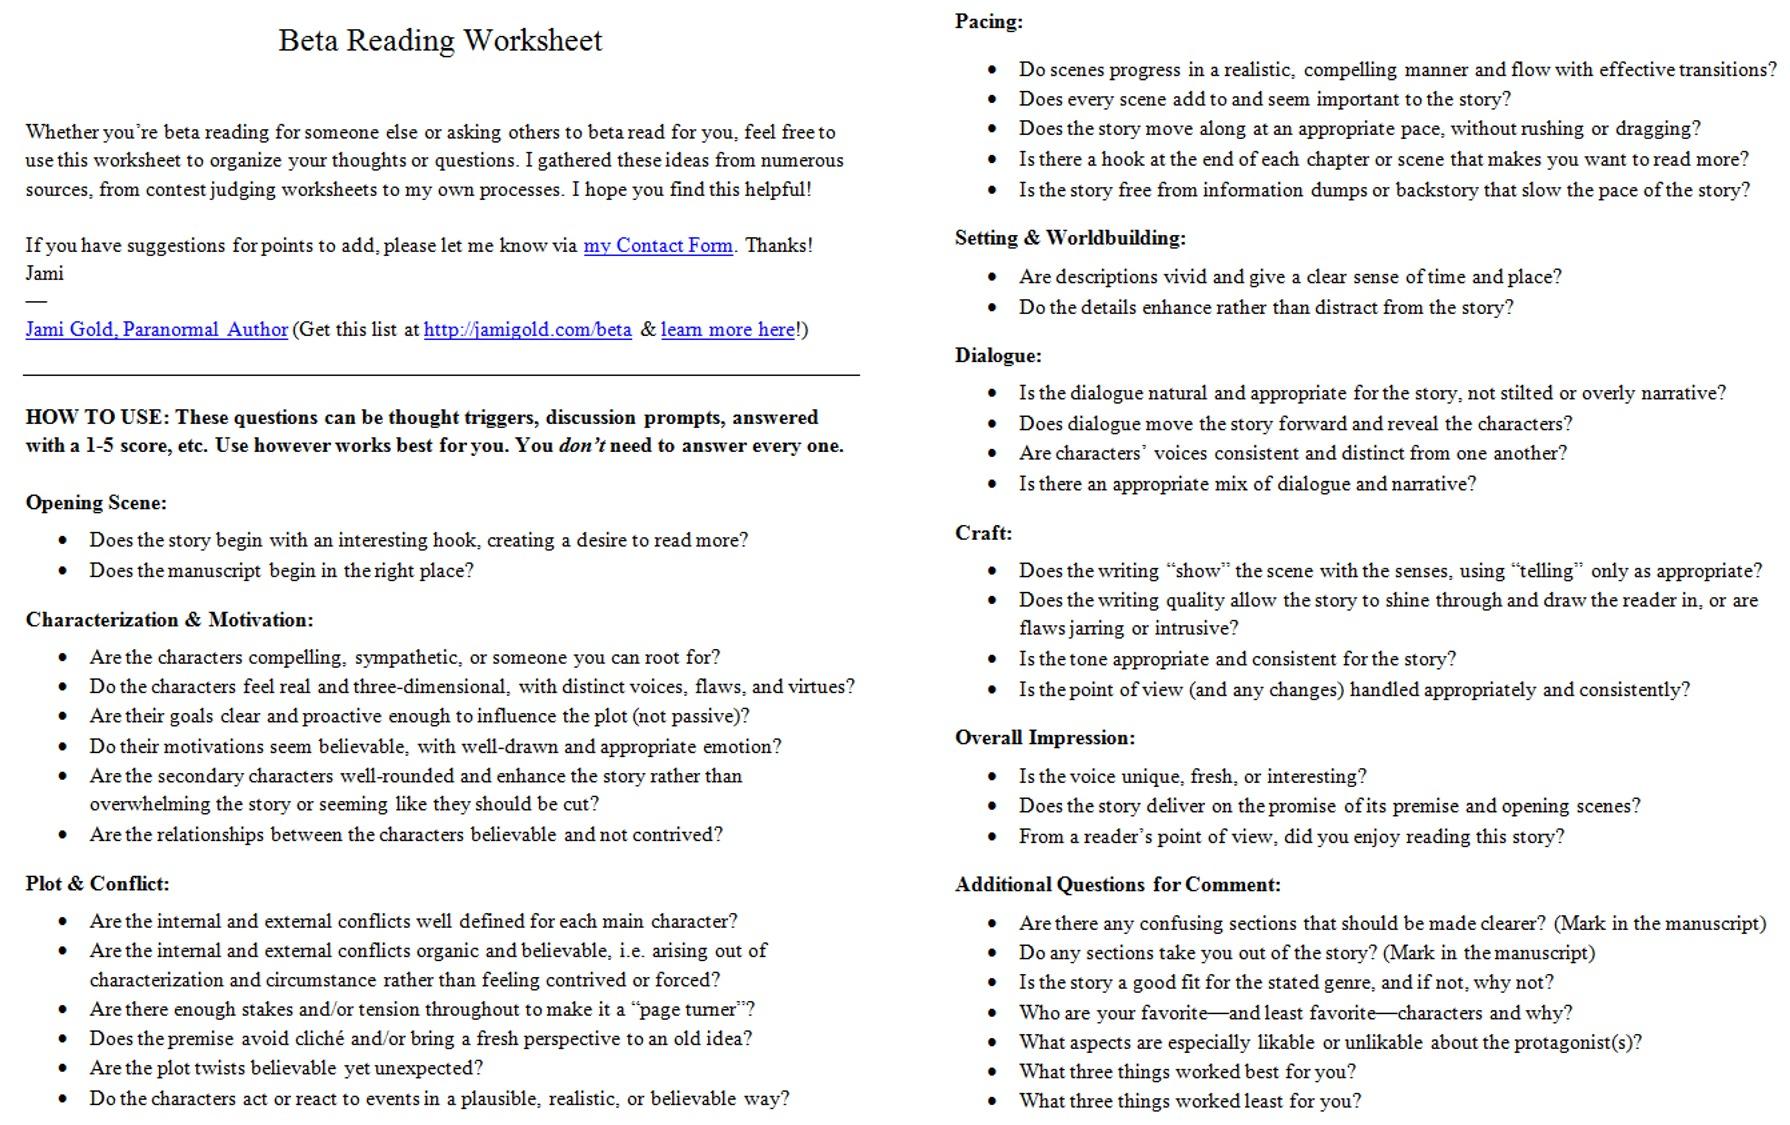 Proatmealus  Scenic Worksheets For Writers  Jami Gold Paranormal Author With Likable Screen Shot Of The Twopage Beta Reading Worksheet With Amazing Making Nouns Plural Worksheet Also Road Signs Worksheet In Addition Free Homeschooling Worksheets And Words Often Confused Worksheet As Well As Human Karyotype Worksheet Additionally Form  Worksheet From Jamigoldcom With Proatmealus  Likable Worksheets For Writers  Jami Gold Paranormal Author With Amazing Screen Shot Of The Twopage Beta Reading Worksheet And Scenic Making Nouns Plural Worksheet Also Road Signs Worksheet In Addition Free Homeschooling Worksheets From Jamigoldcom